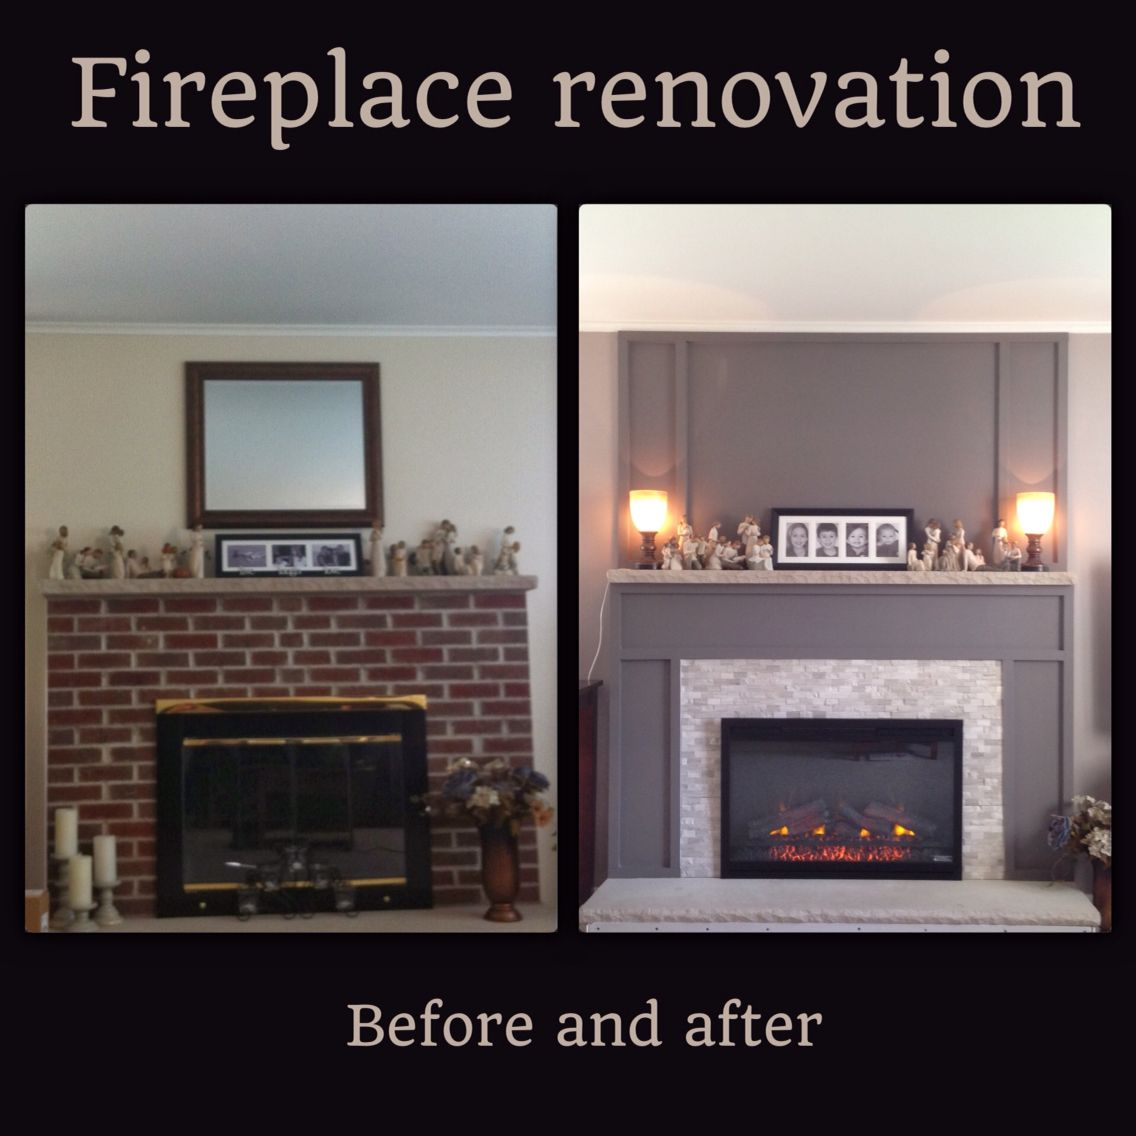 Renovate Brick Fireplace Brick Fireplace Renovation Cover Old Brick With Drywall Screw